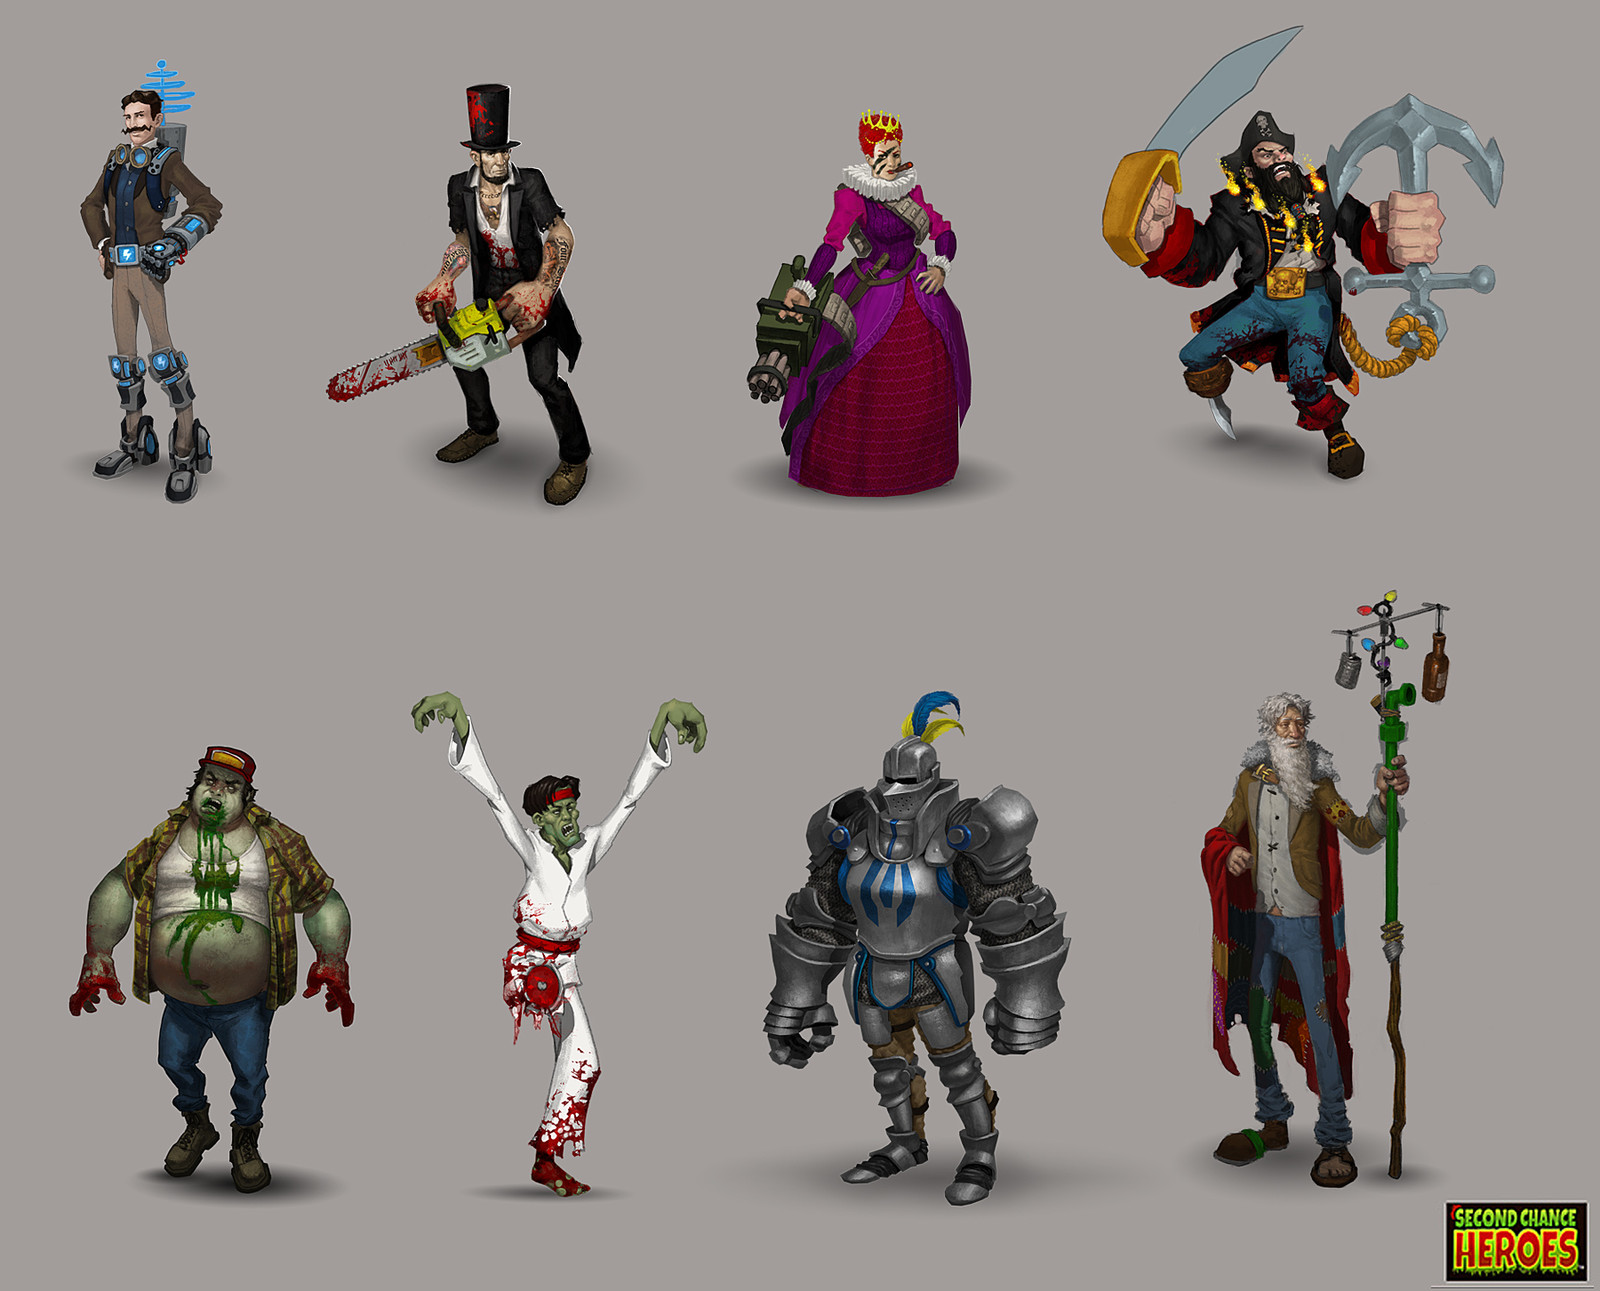 2nd Chance Heroes - mobile game concept art. Yes, that is Lincoln with a chainsaw.